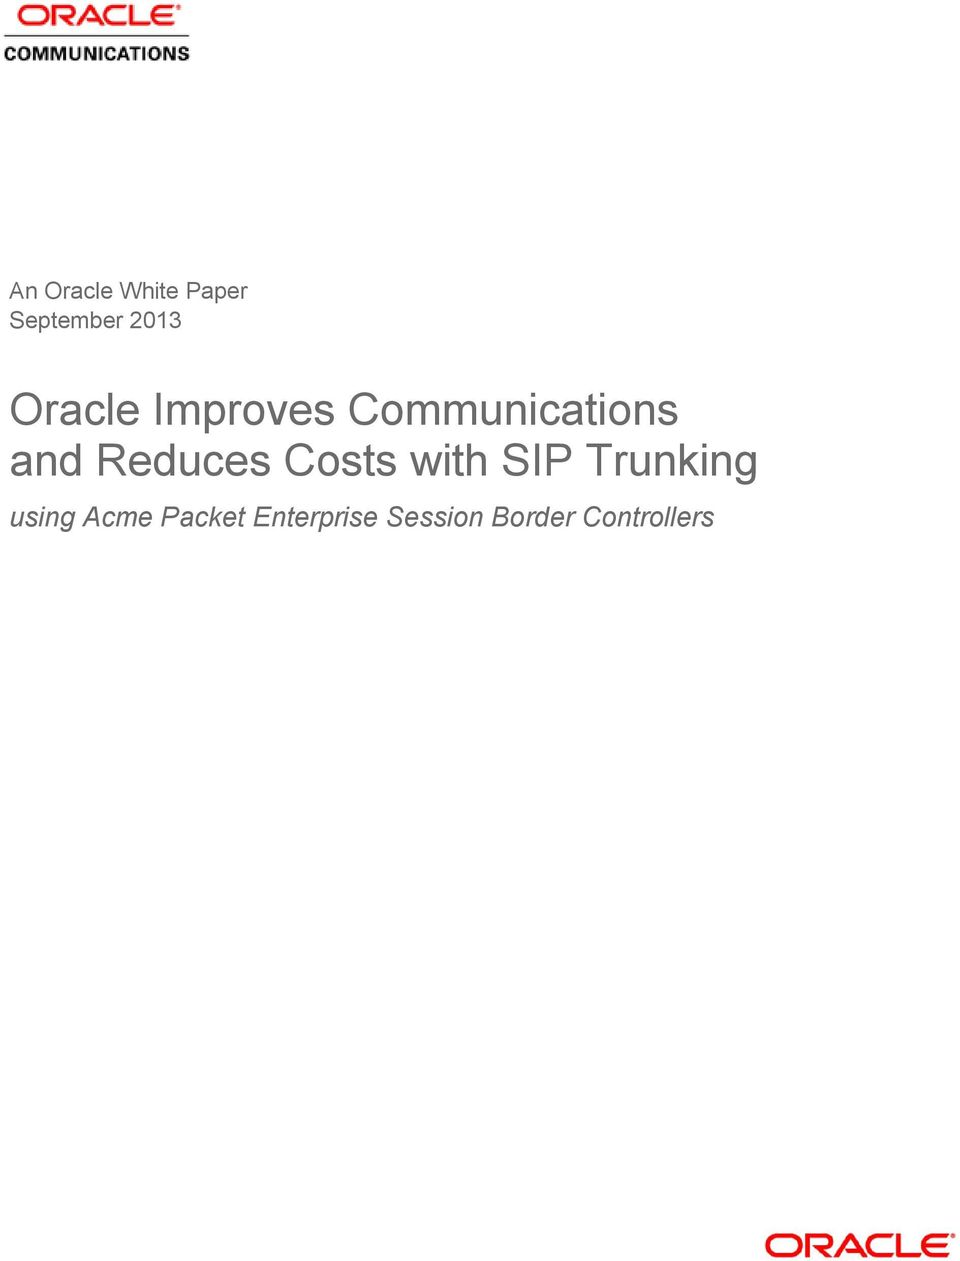 Reduces Costs with SIP Trunking using